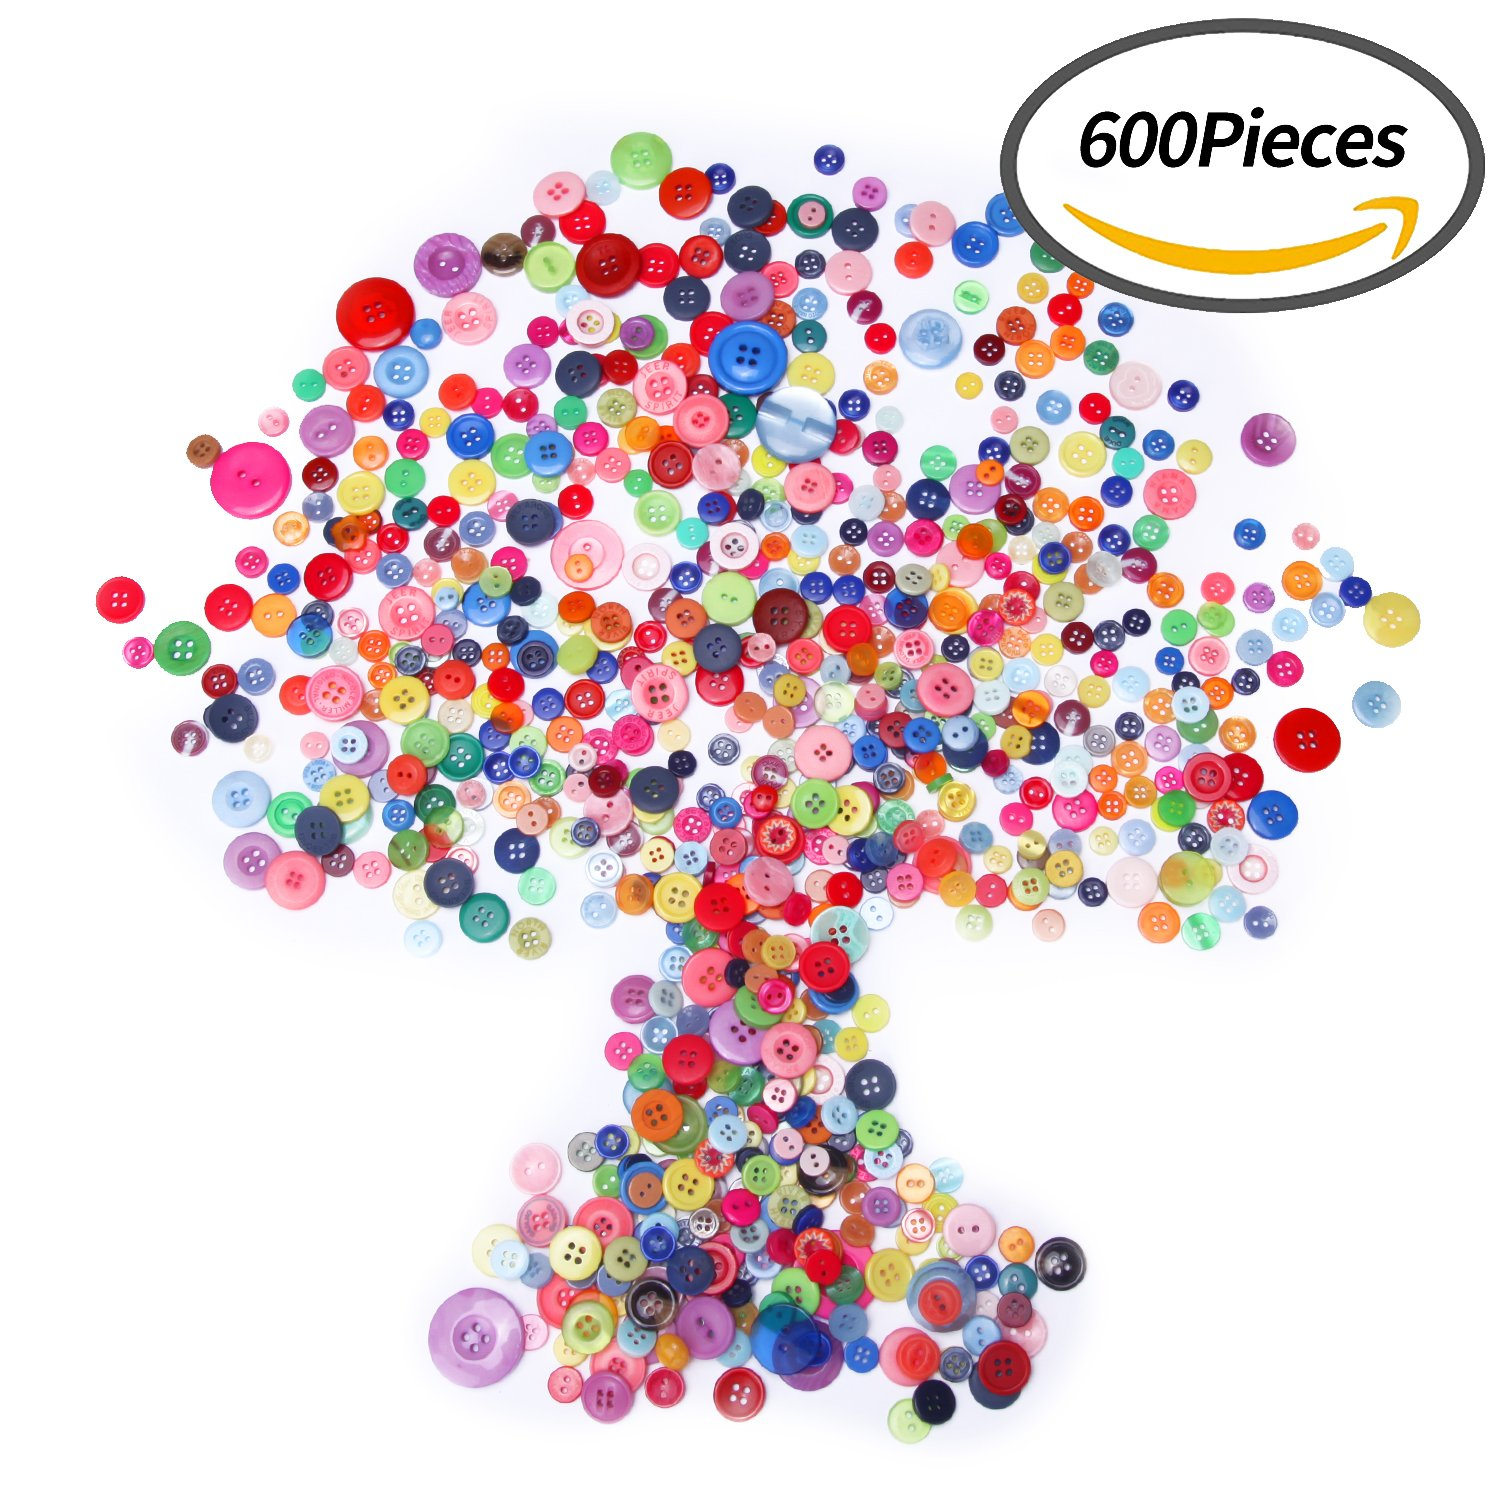 Senkary 600 Pieces Craft Buttons Decorative Sewing Buttons Assorted Buttons Resin Round Buttons Bulk 4 Holes and 2 Holes, Assorted Colors and Sizes (Multicolored)